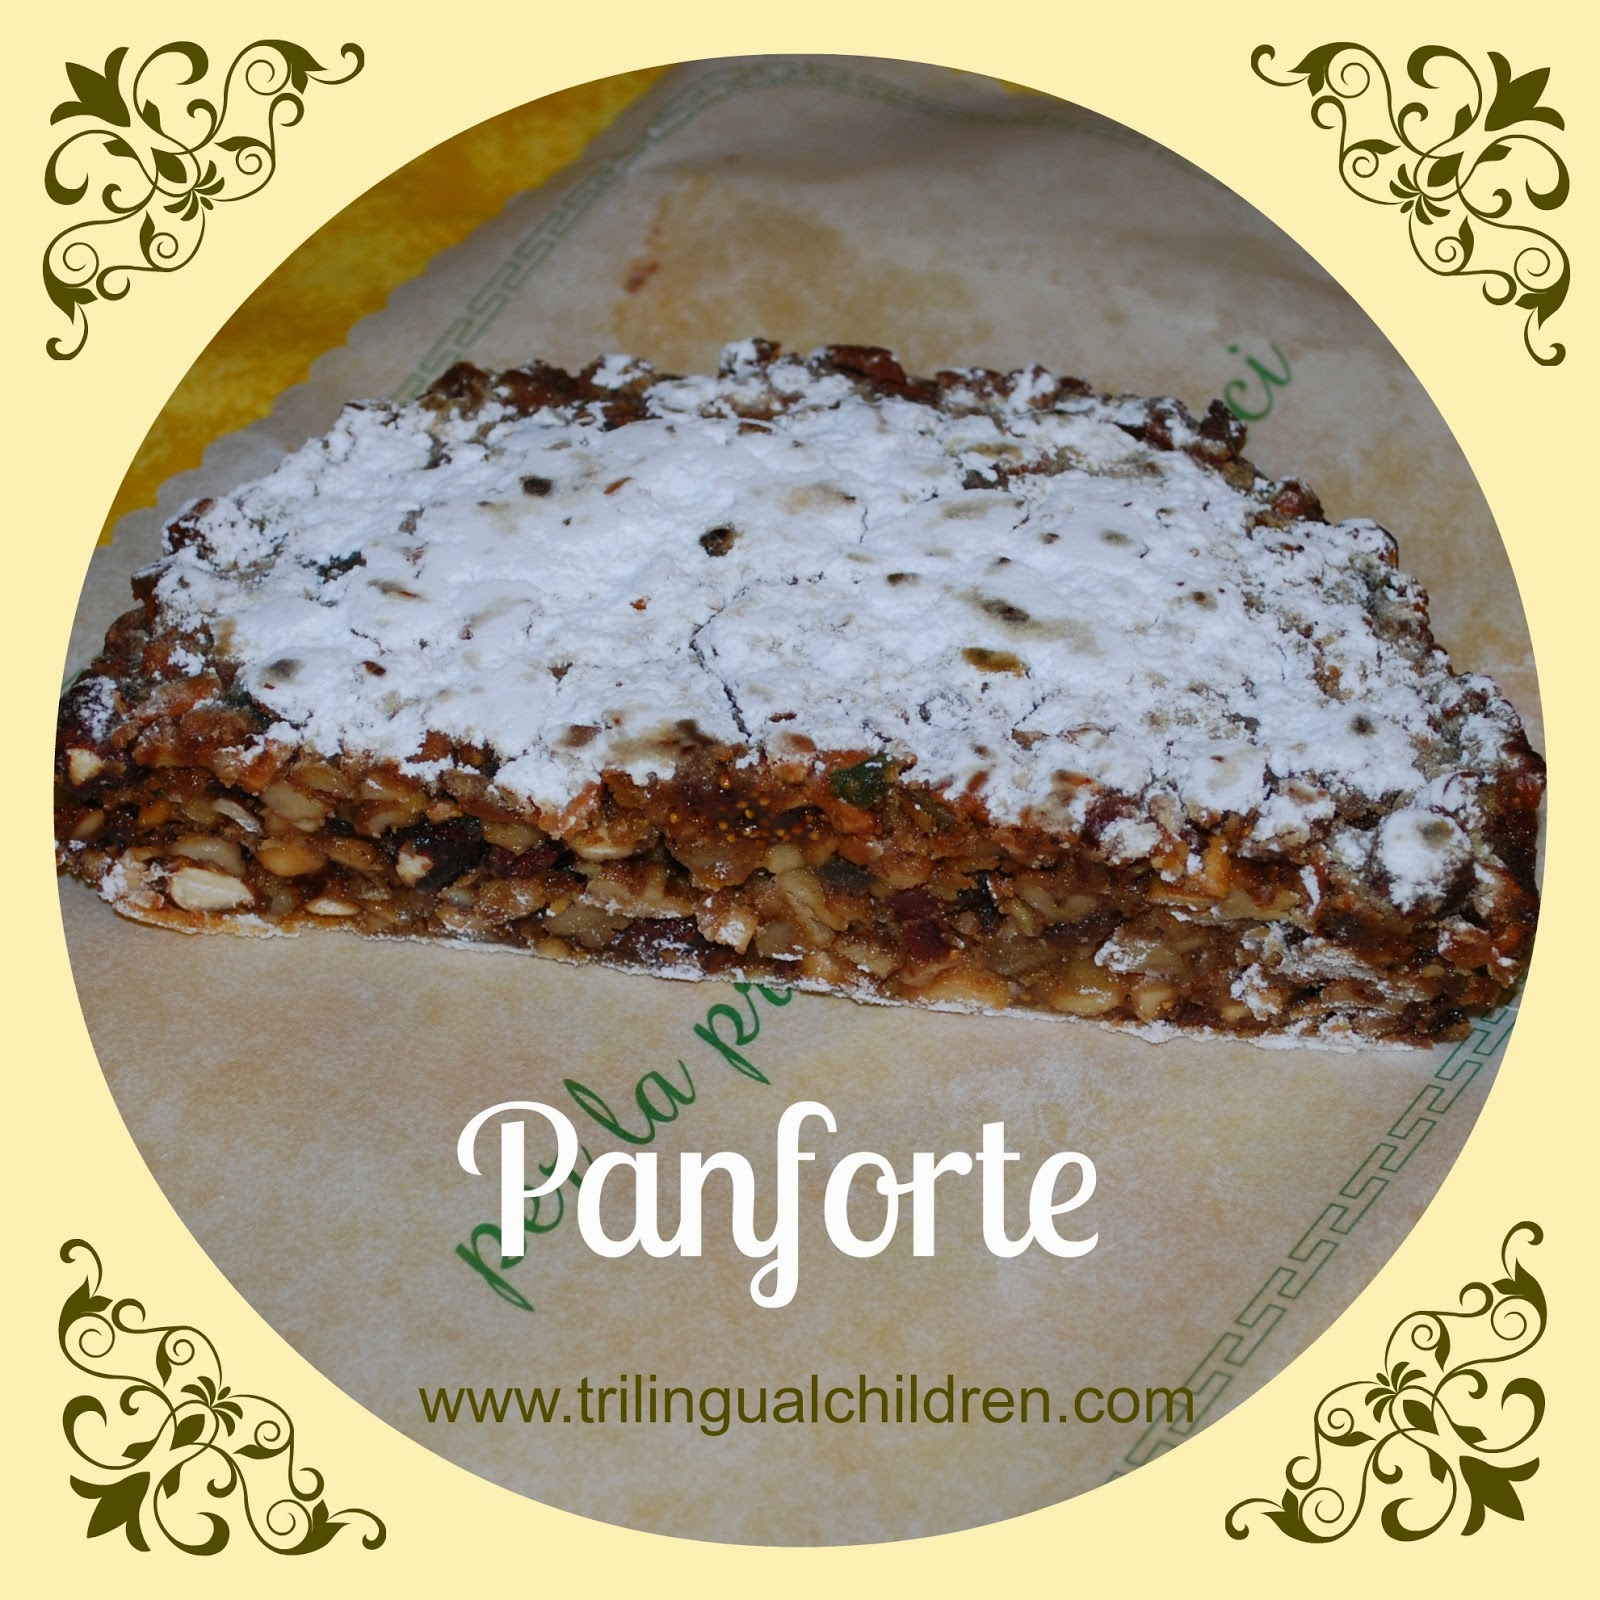 Panforte hard Italian sweet